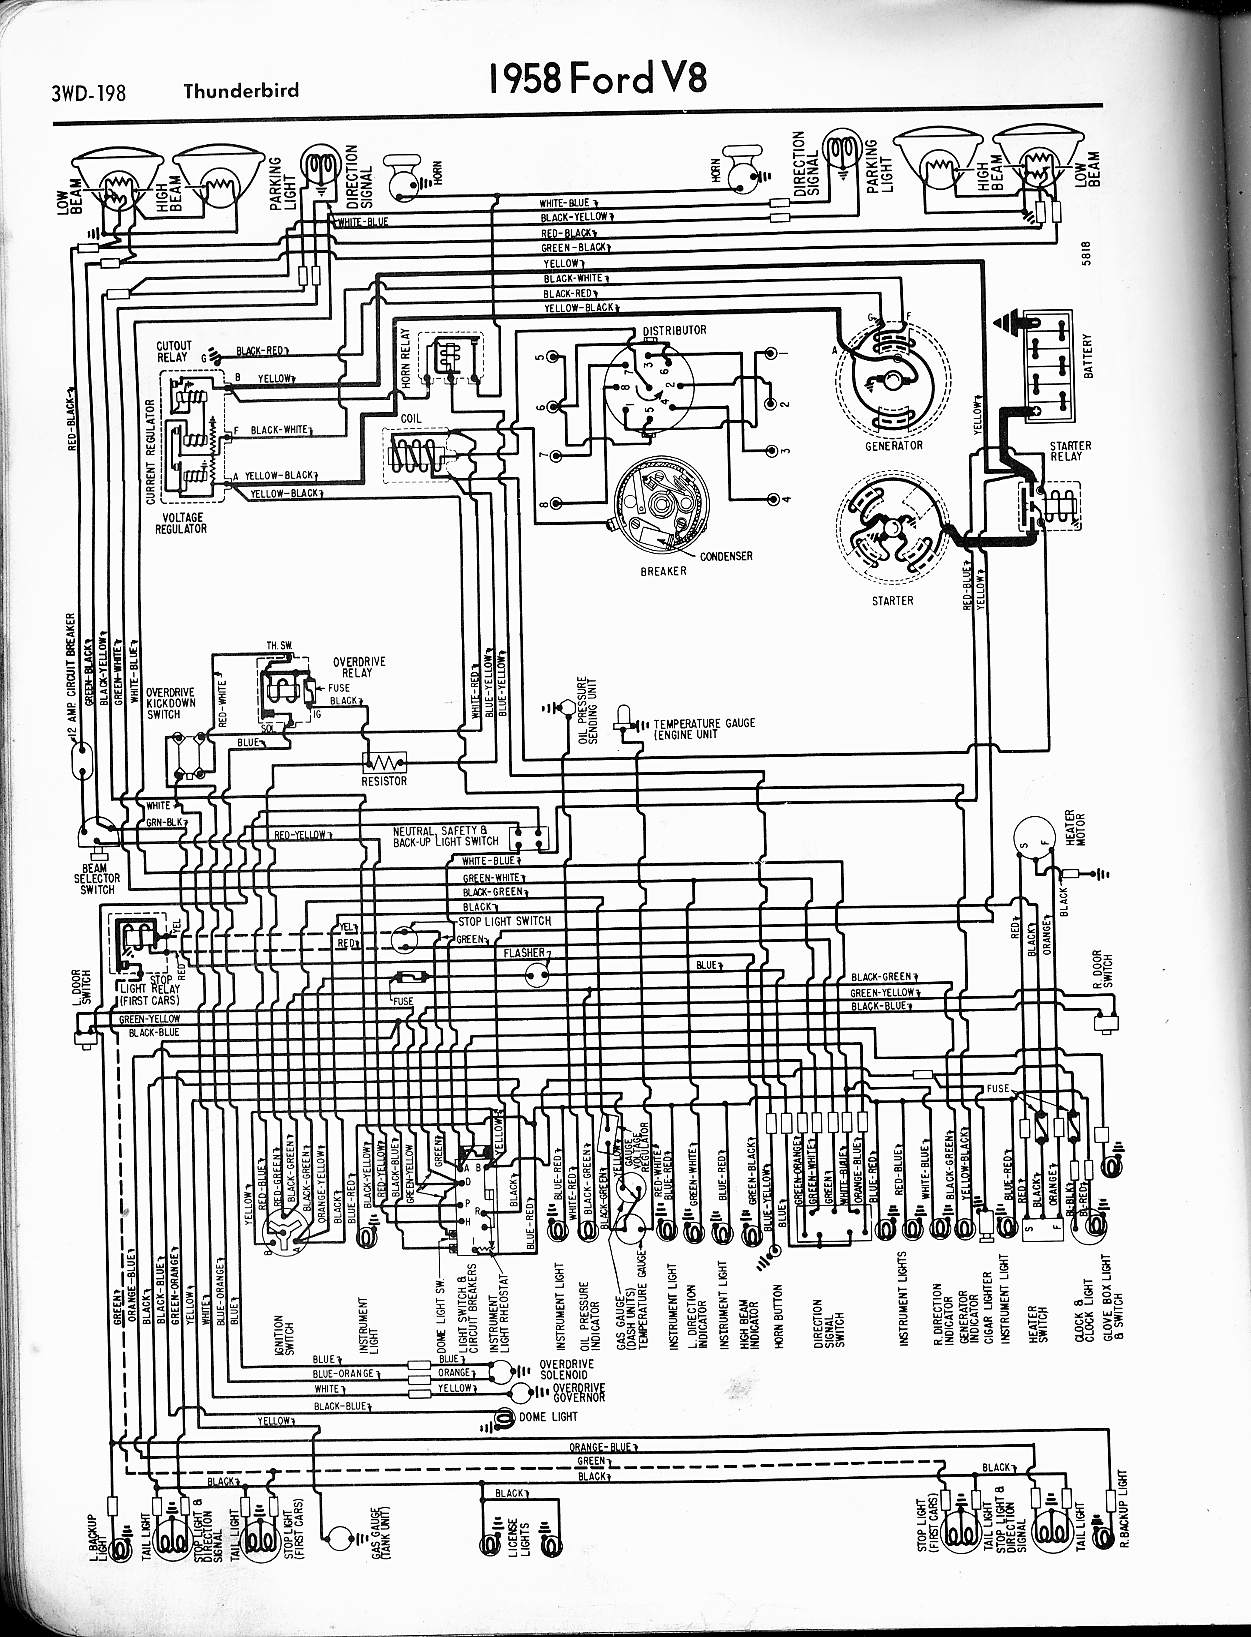 MWire5765 198 1958 ford car wiring diagram 1958 wirning diagrams 2000 Ford Headlight Switch Wiring Diagram at webbmarketing.co